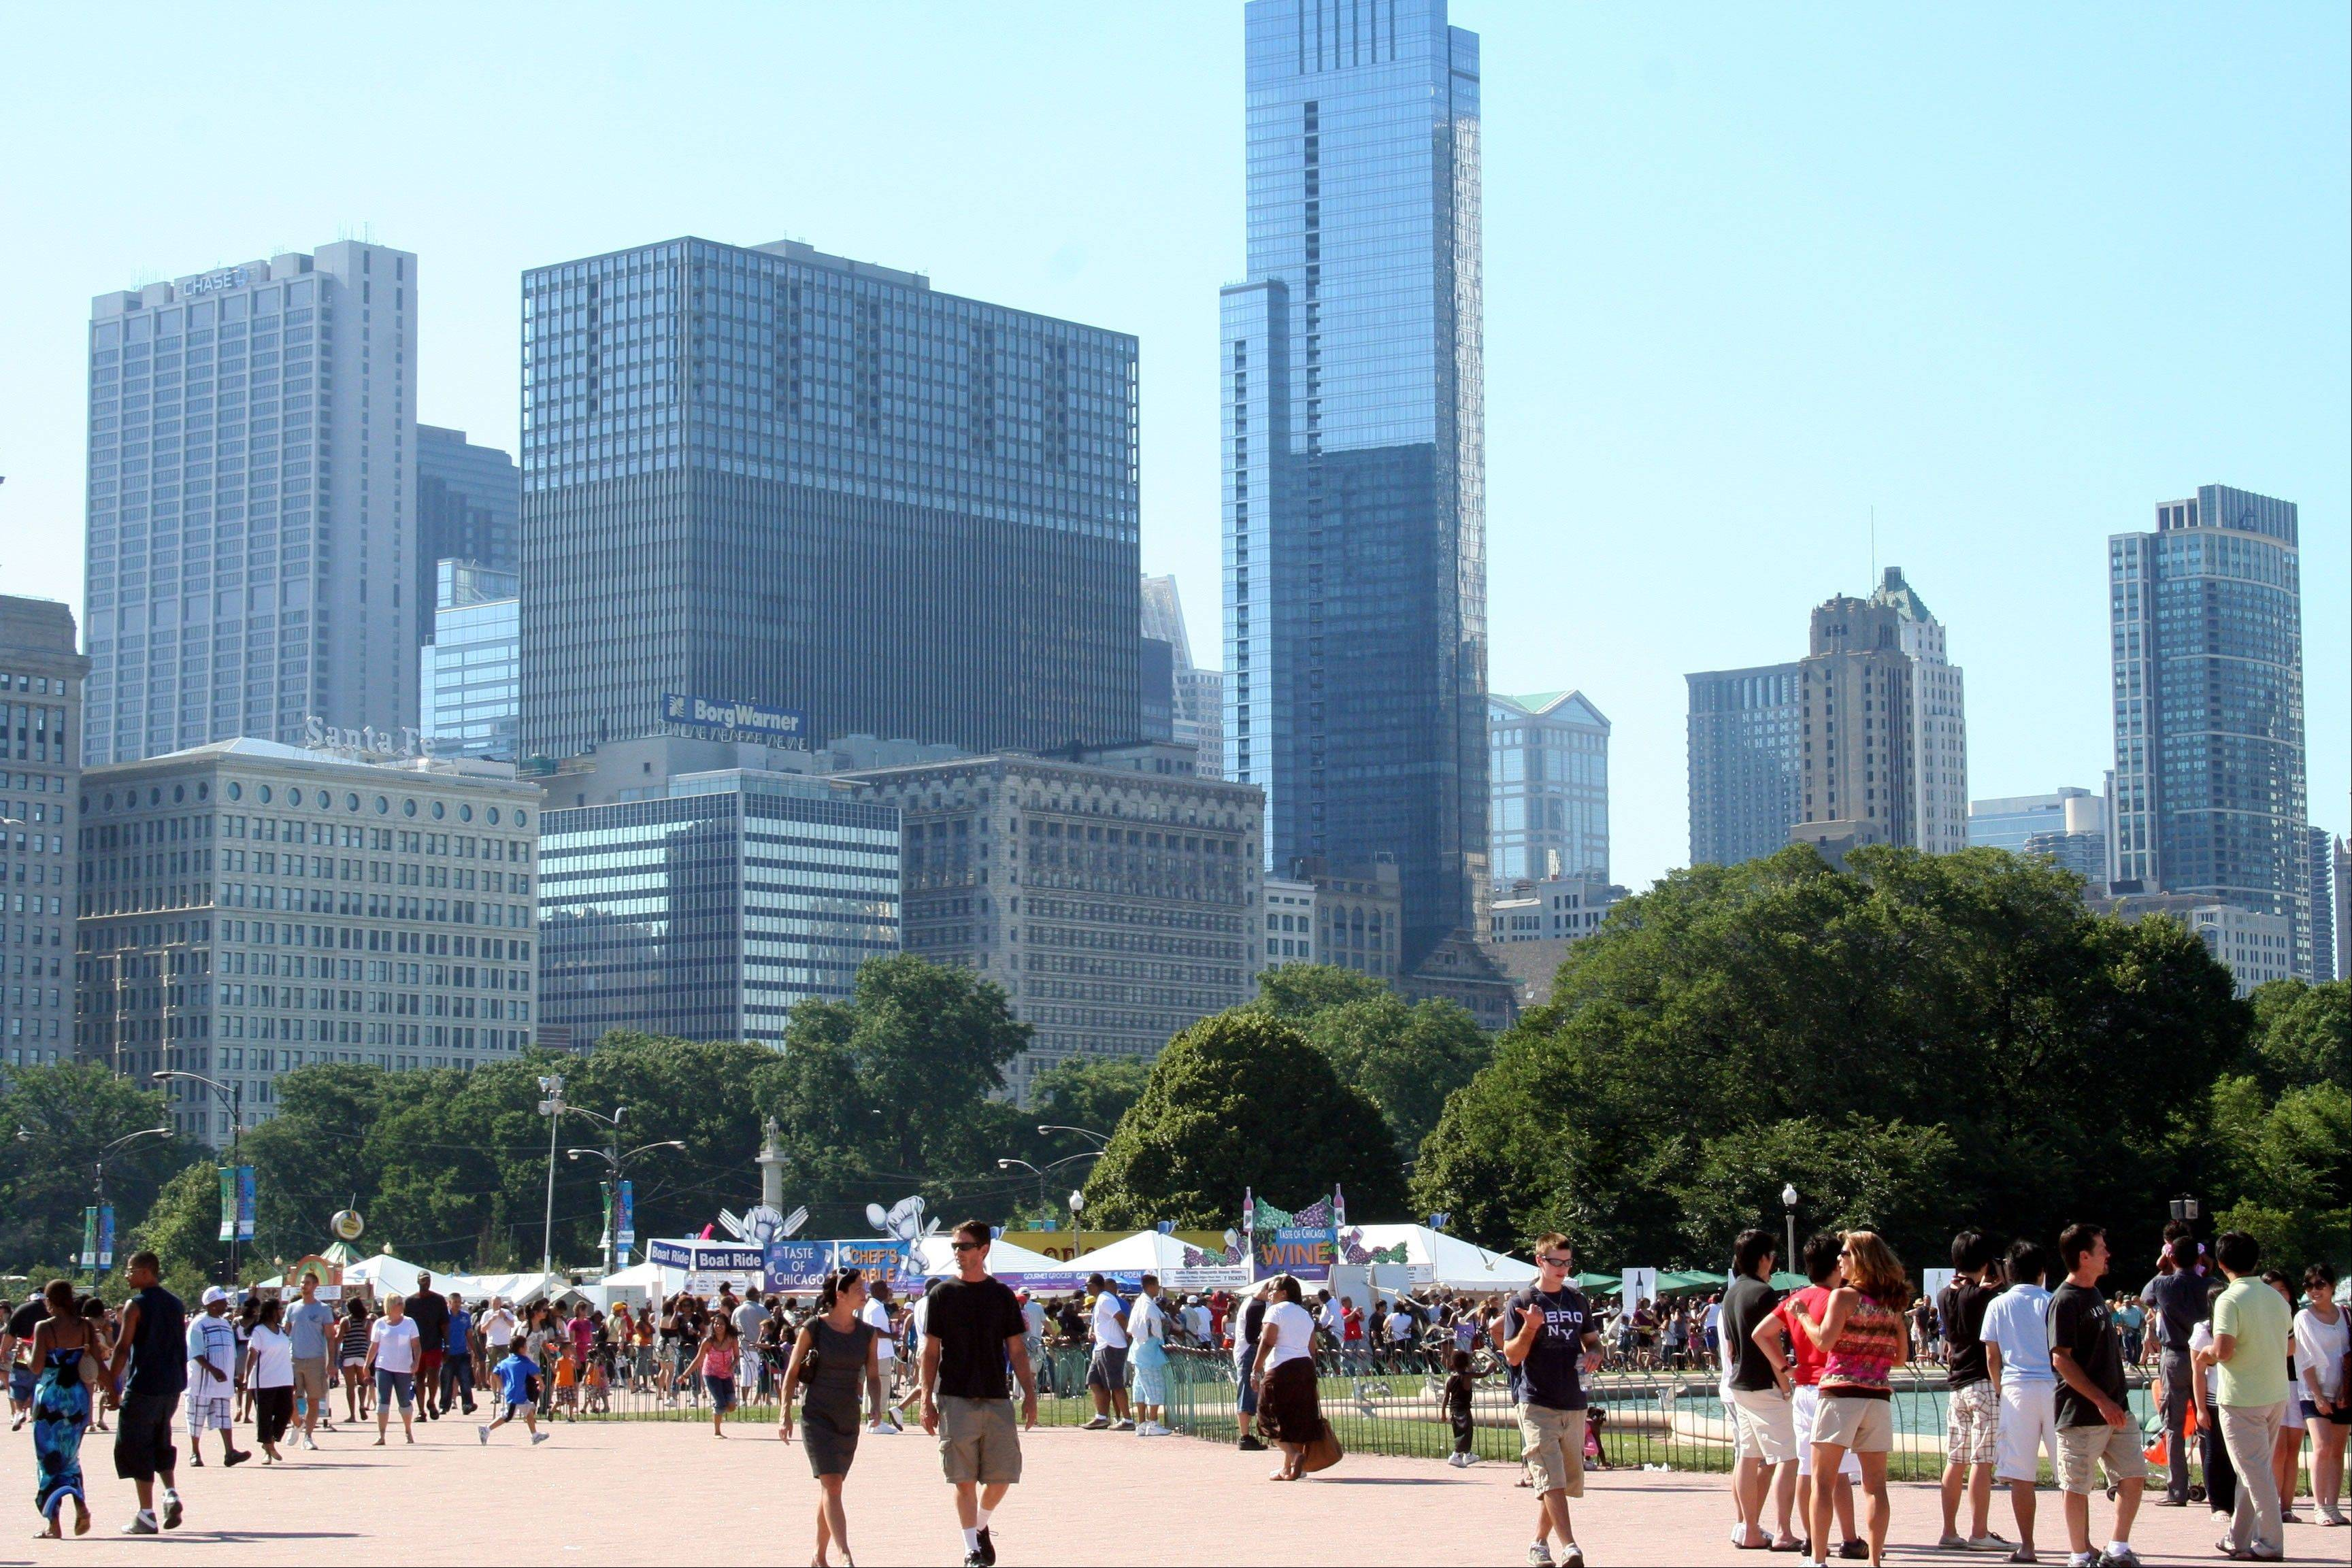 The Taste of Chicago starts July 10 and ends July 14.